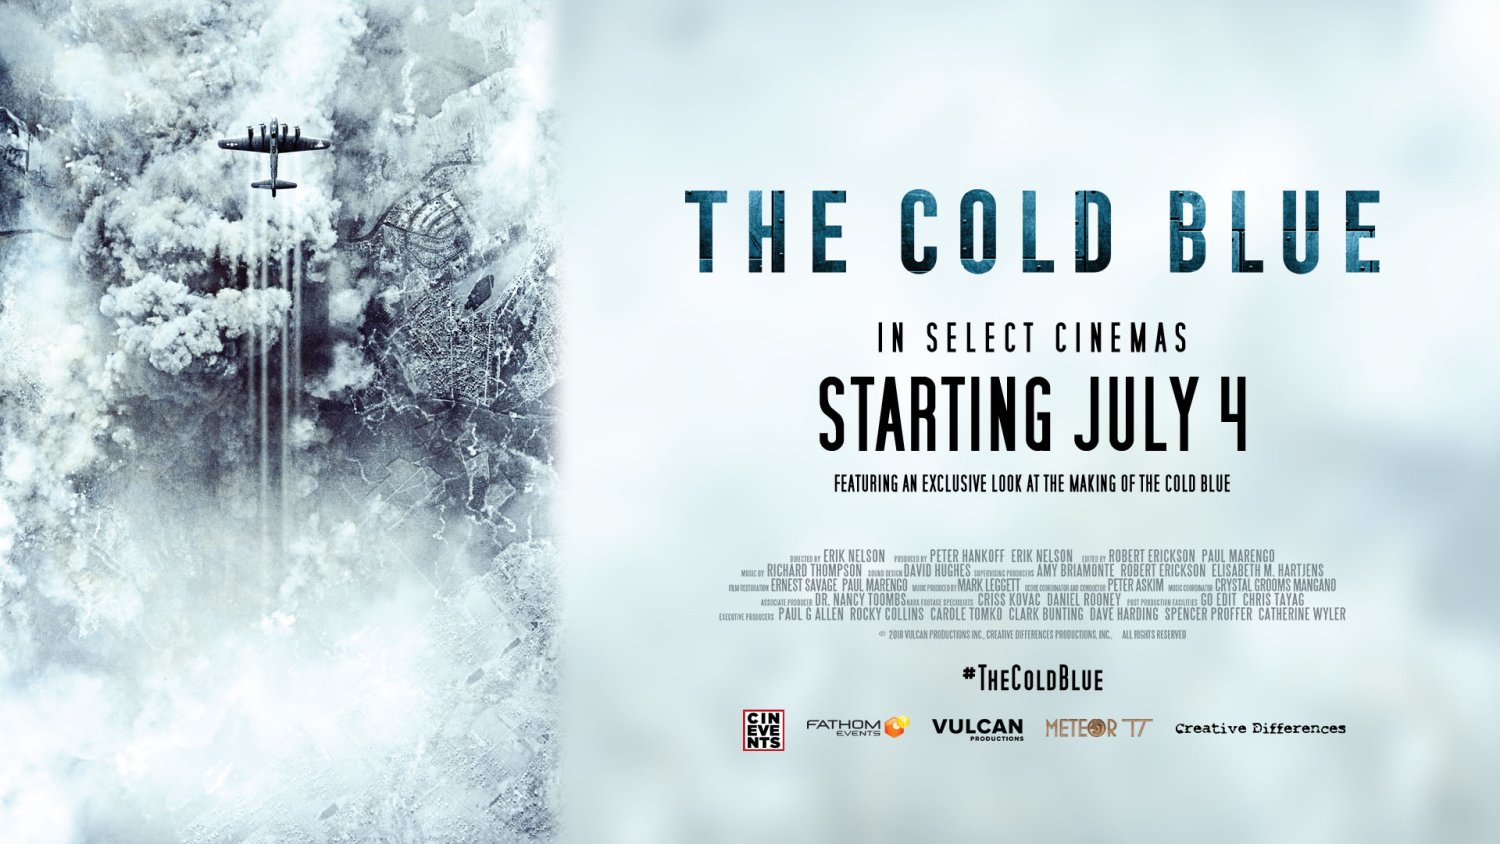 The Cold Blue 1920 x 1080